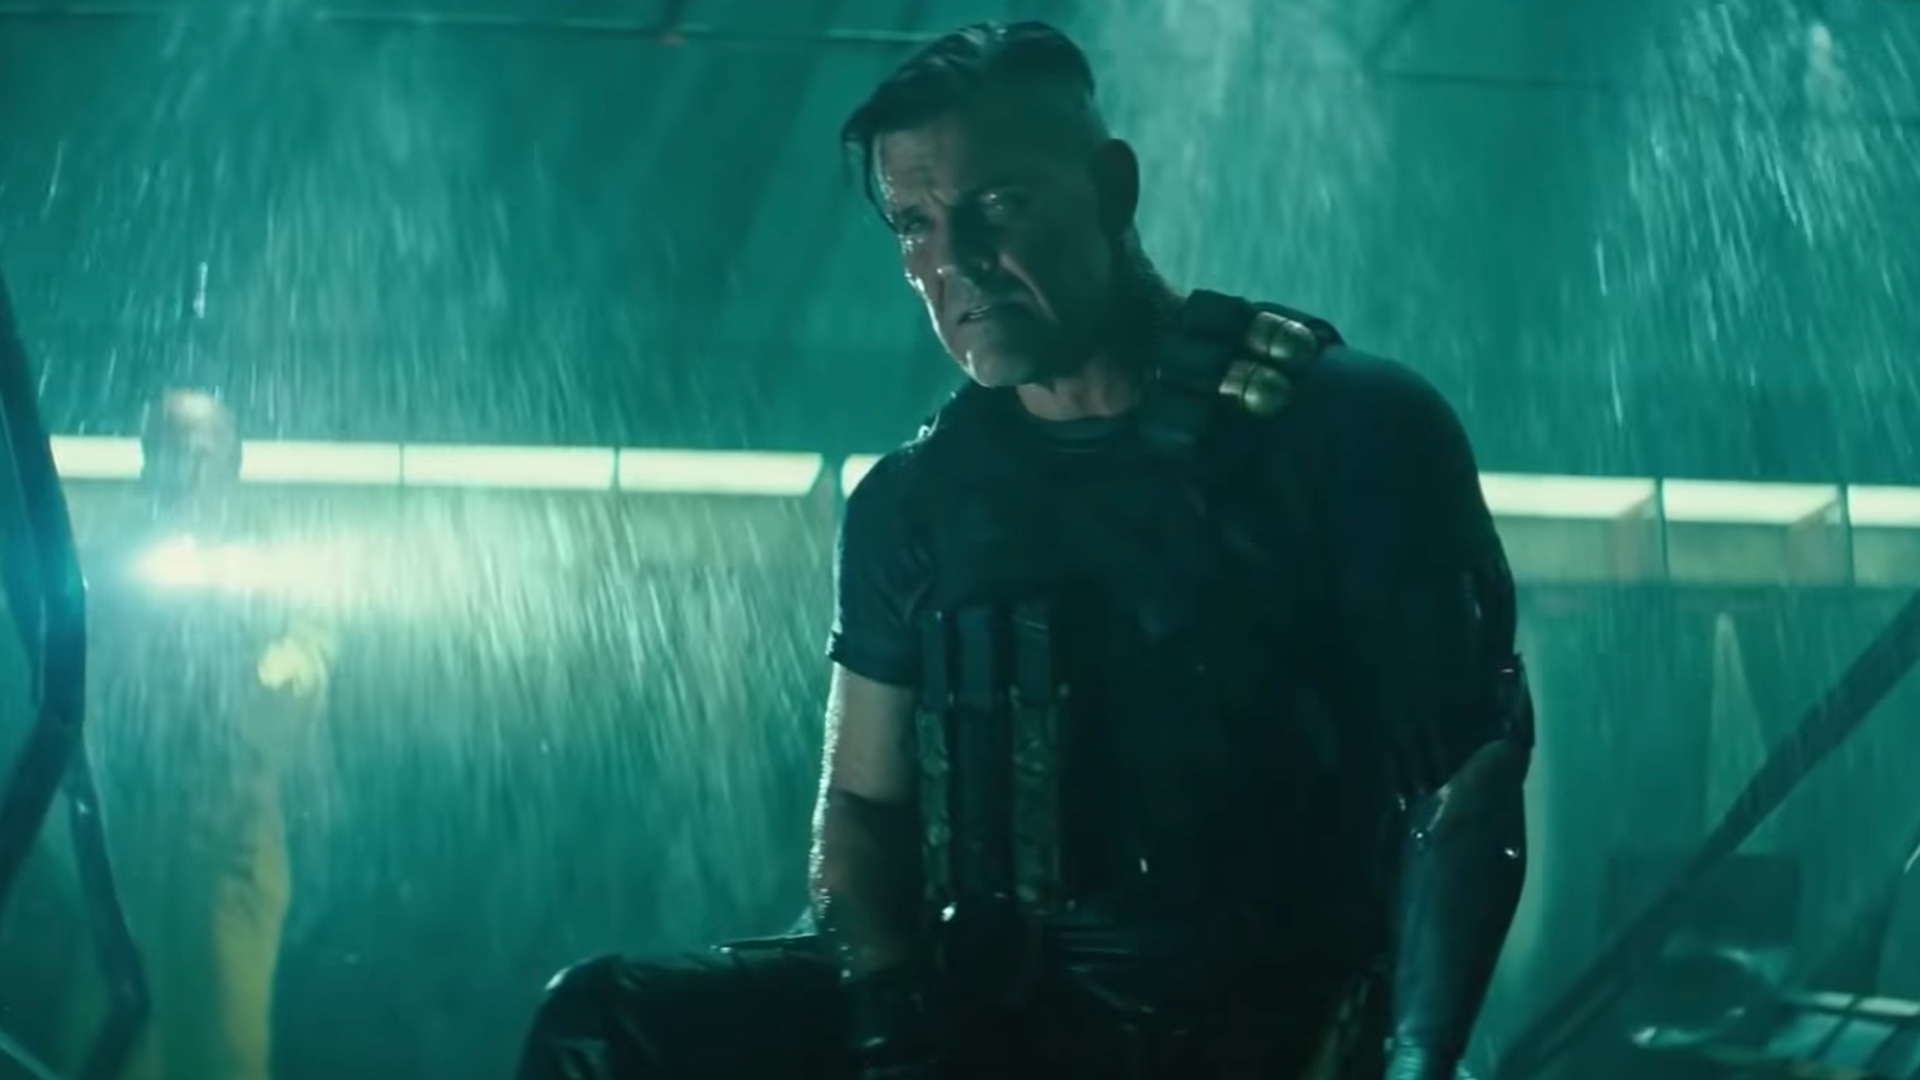 deadpool-and-cable-fight-in-new-clip-from-deadpool-2-social.jpg